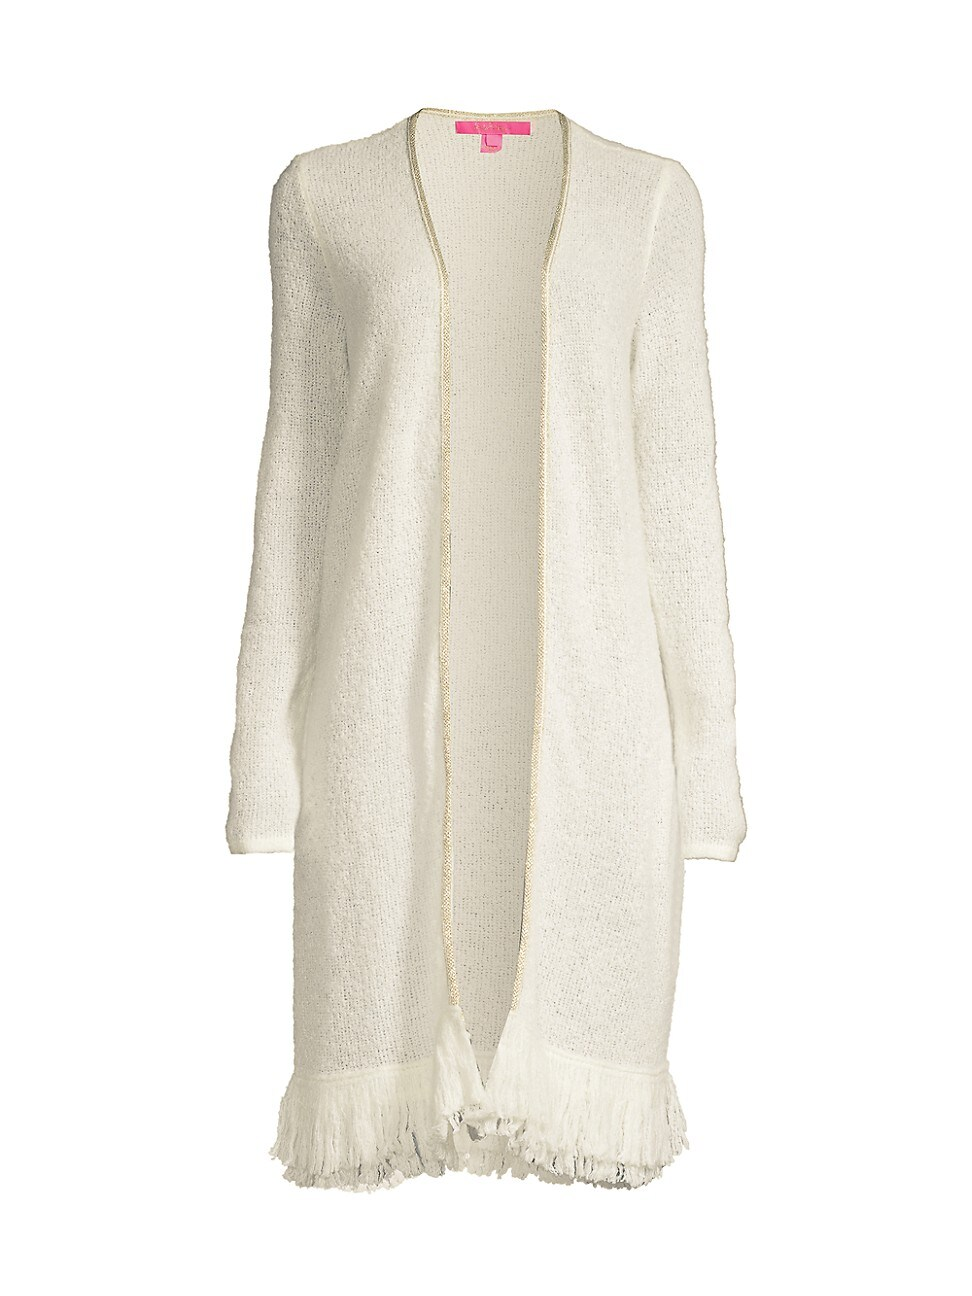 Lilly Pulitzer Women's Yana Open-front Cardigan In Coconut